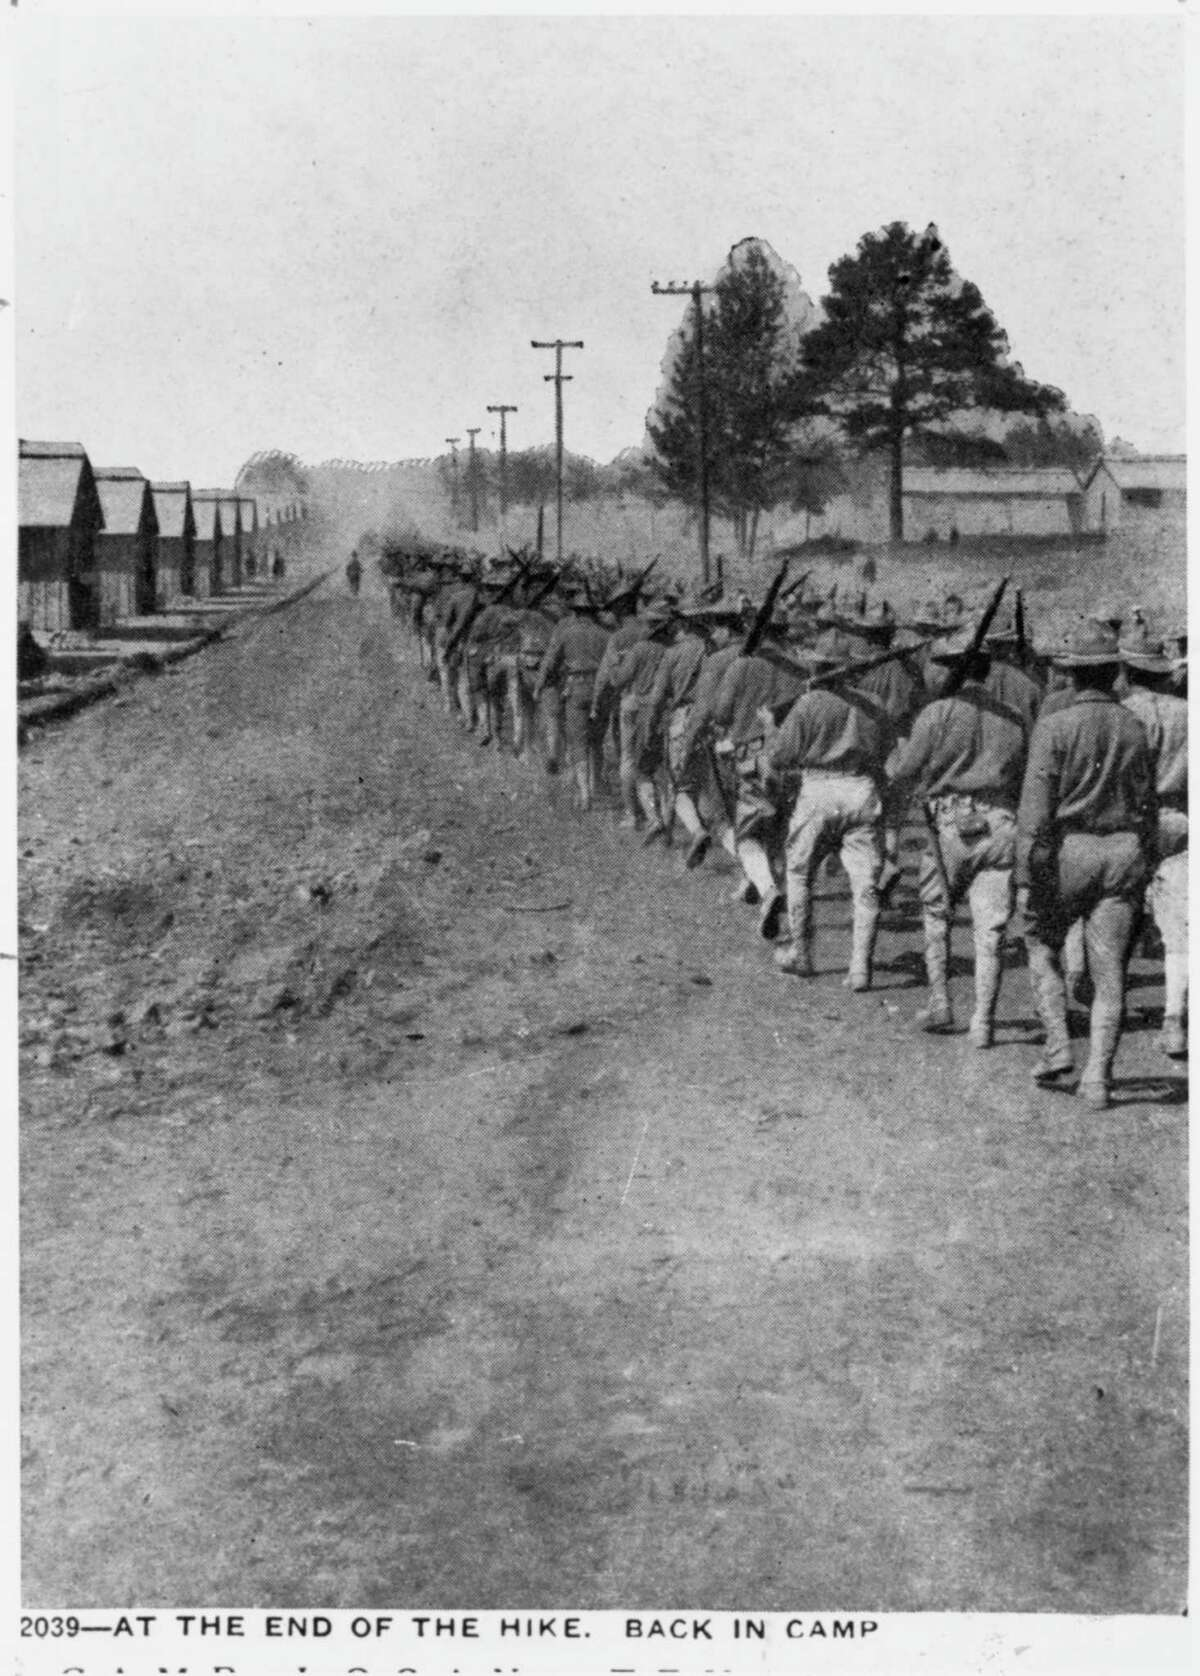 Soldiers in training for service in World War 1, heading back to Camp Logan after a hike through the area that is now known as Memorial Park. This photograph is among those belonging to the Houston Public Library that chronicle the history of Houston.